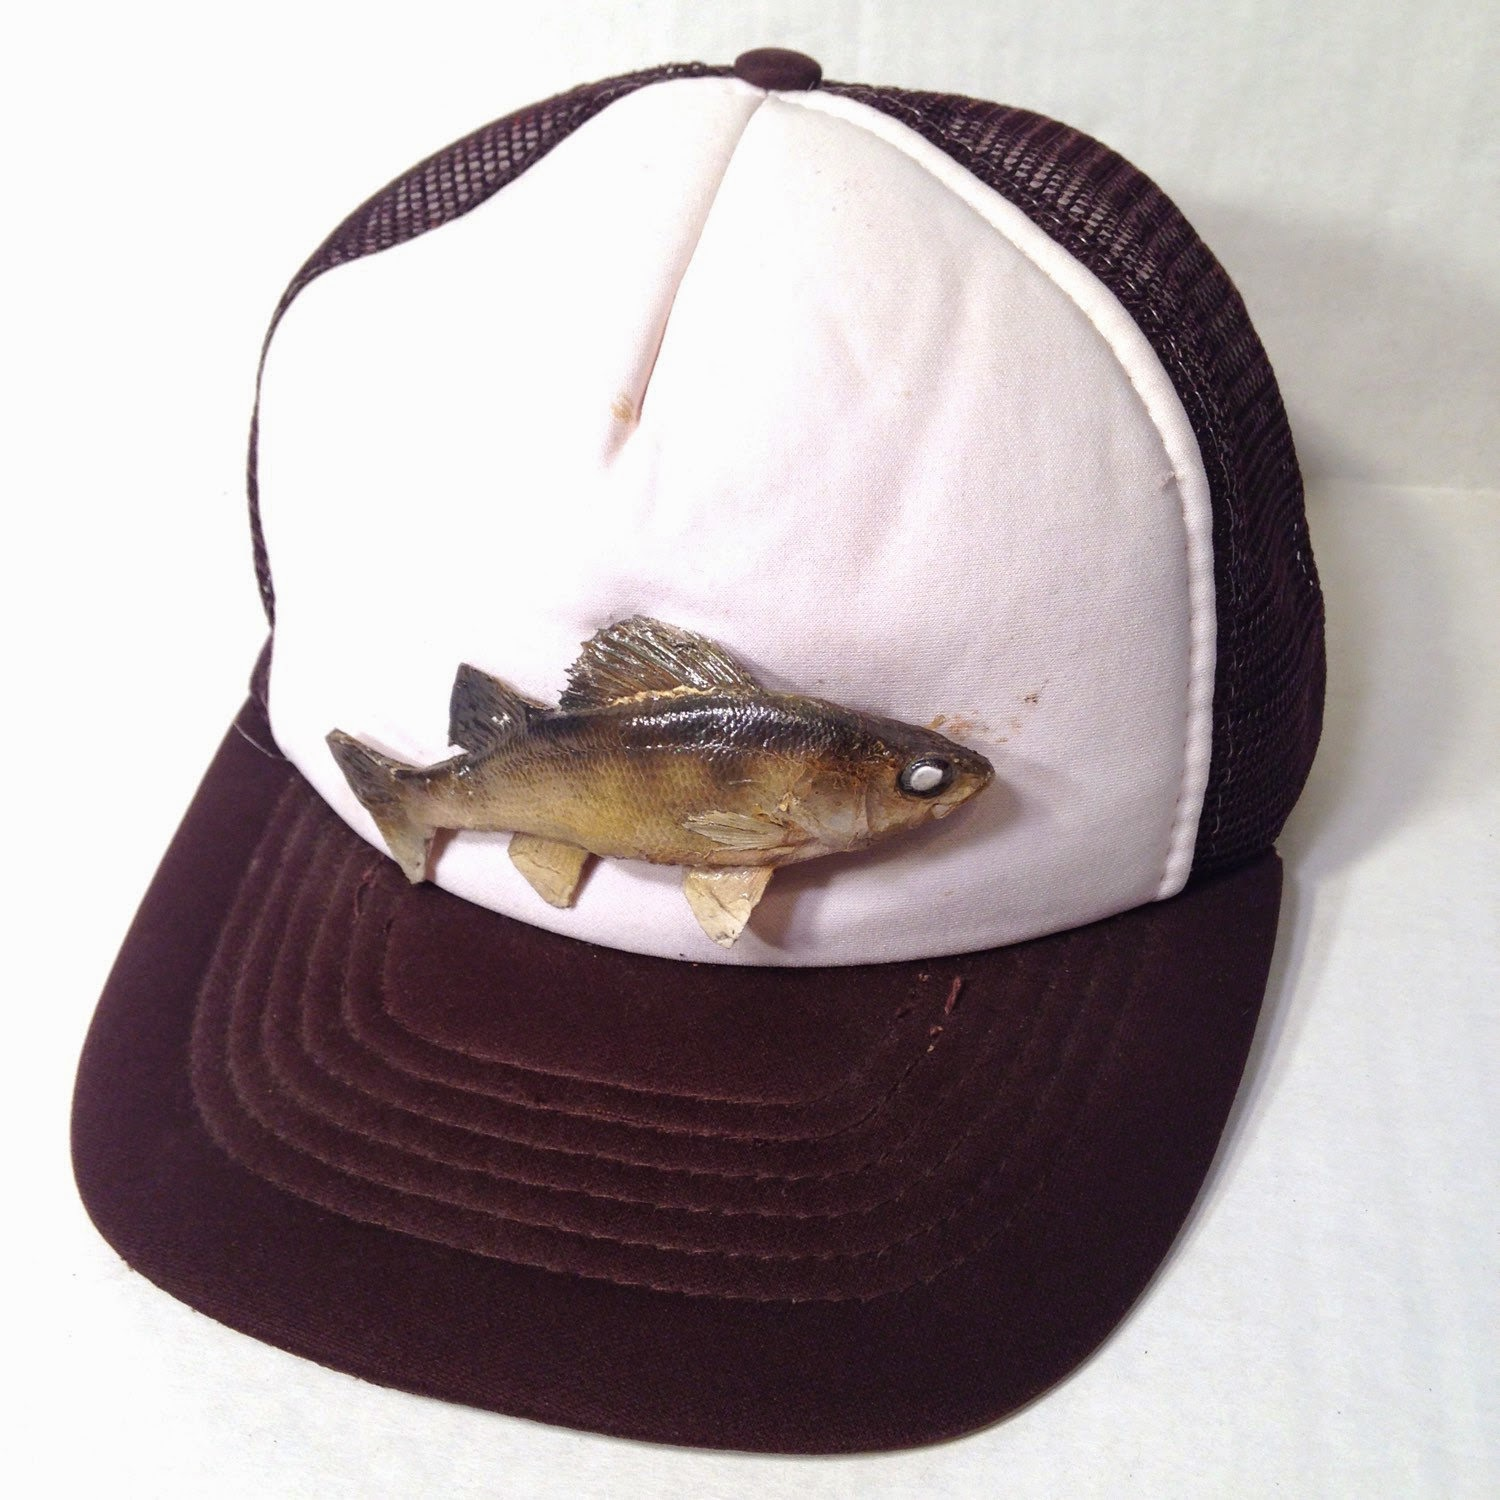 https://www.etsy.com/listing/221566814/1980s-trucker-hat-with-a-real